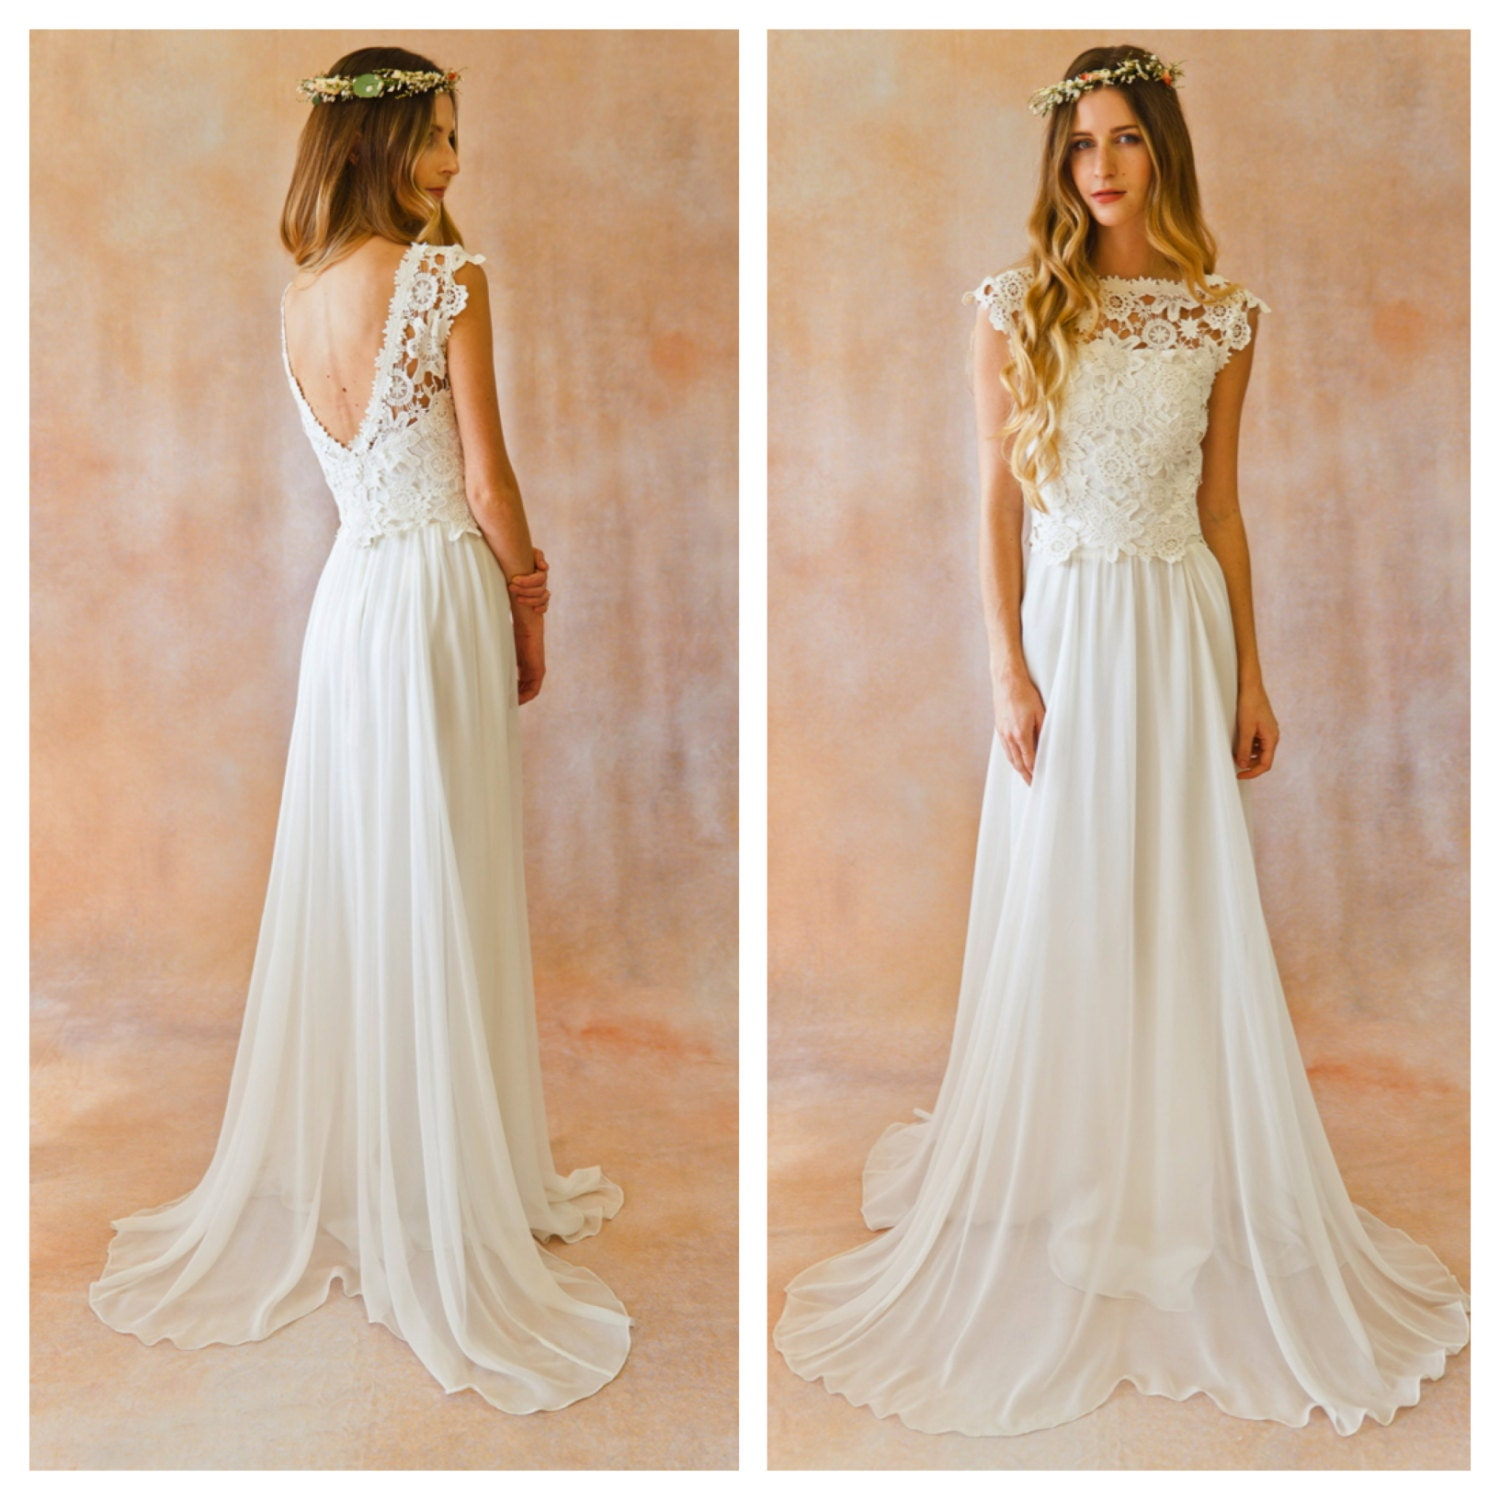 Amy 2-Piece Lace Silk Chiffon Bohemian Wedding Dress. OPEN